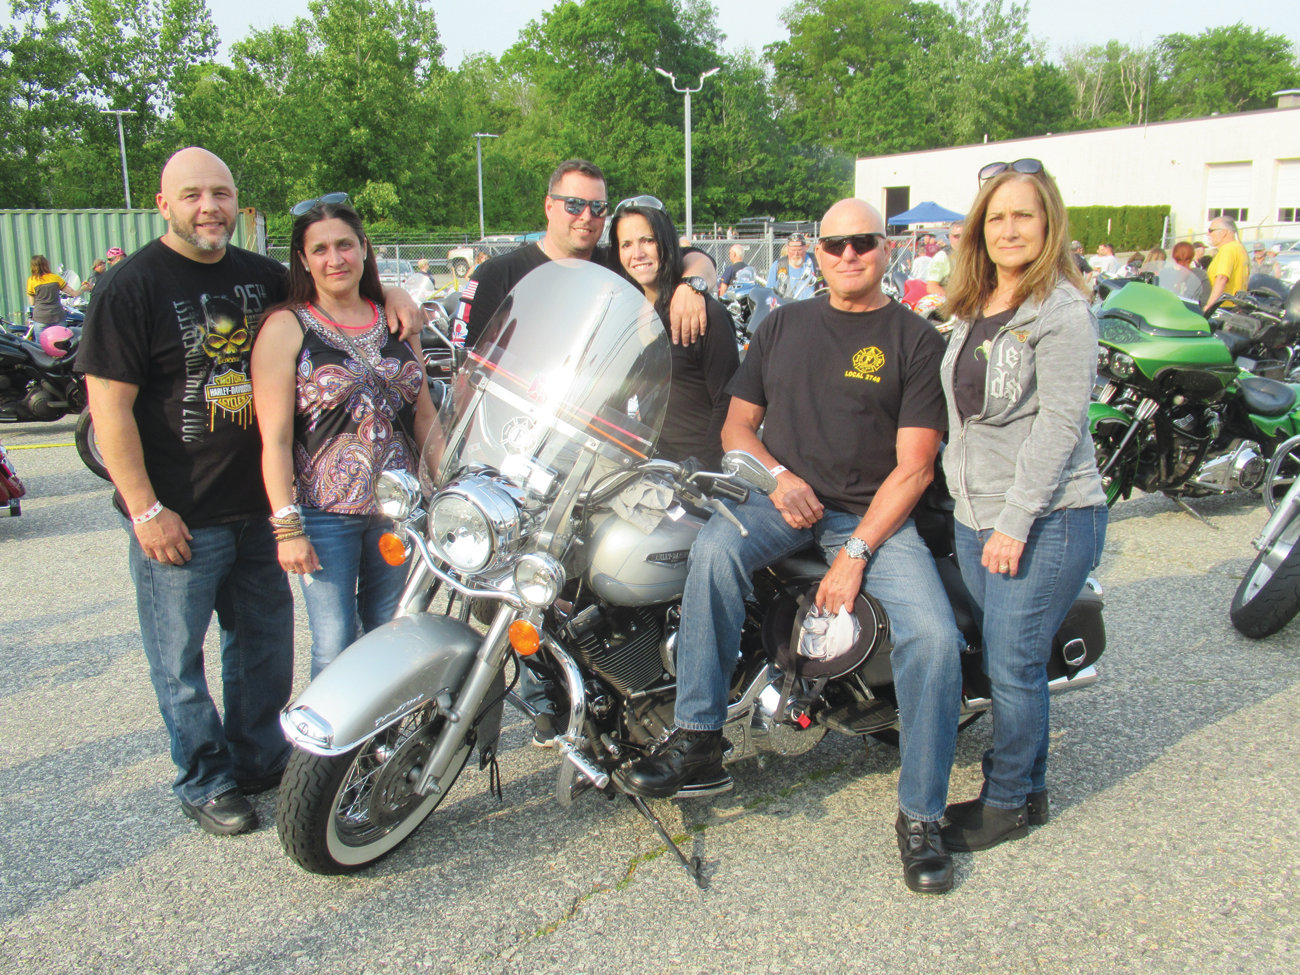 SPECIAL SUPPORTERS: Retired Warwick firefighters Mike Clarke (fifth left) and his friends Paula Larson, Robert Mirabella, Dave Farman, Nancy Roy and Laura Brasil were part of the record-setting 1,000 plus motorcyclists that raised upwards of $30,000 Saturday.